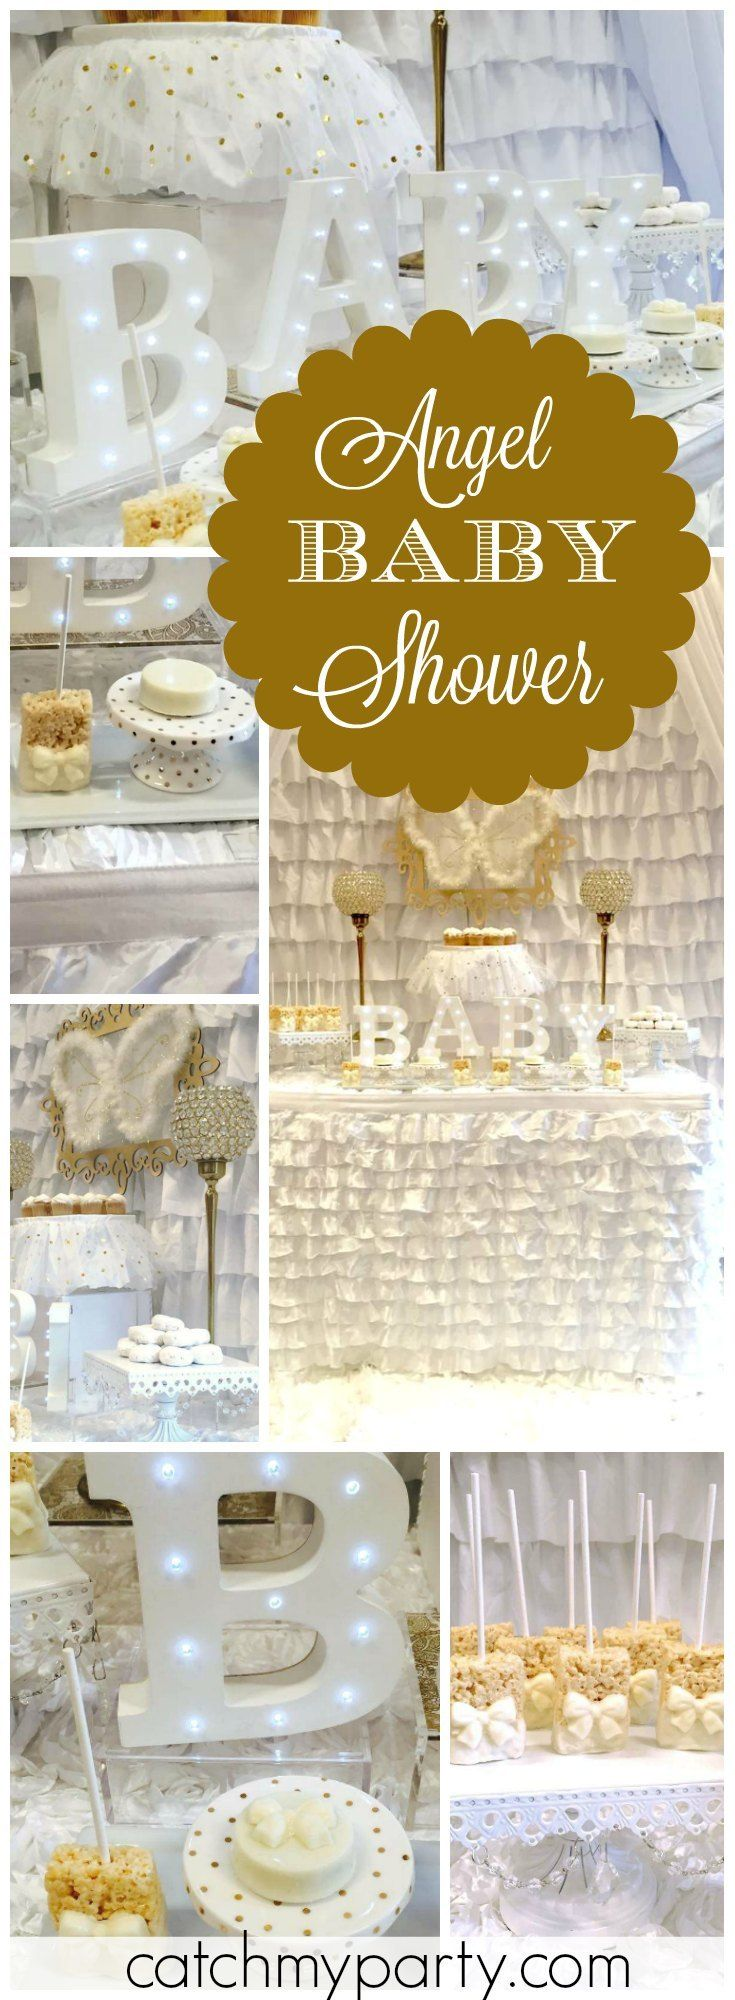 You have to see this angelic white and gold baby shower! See more party ideas at Catchmyparty.com!